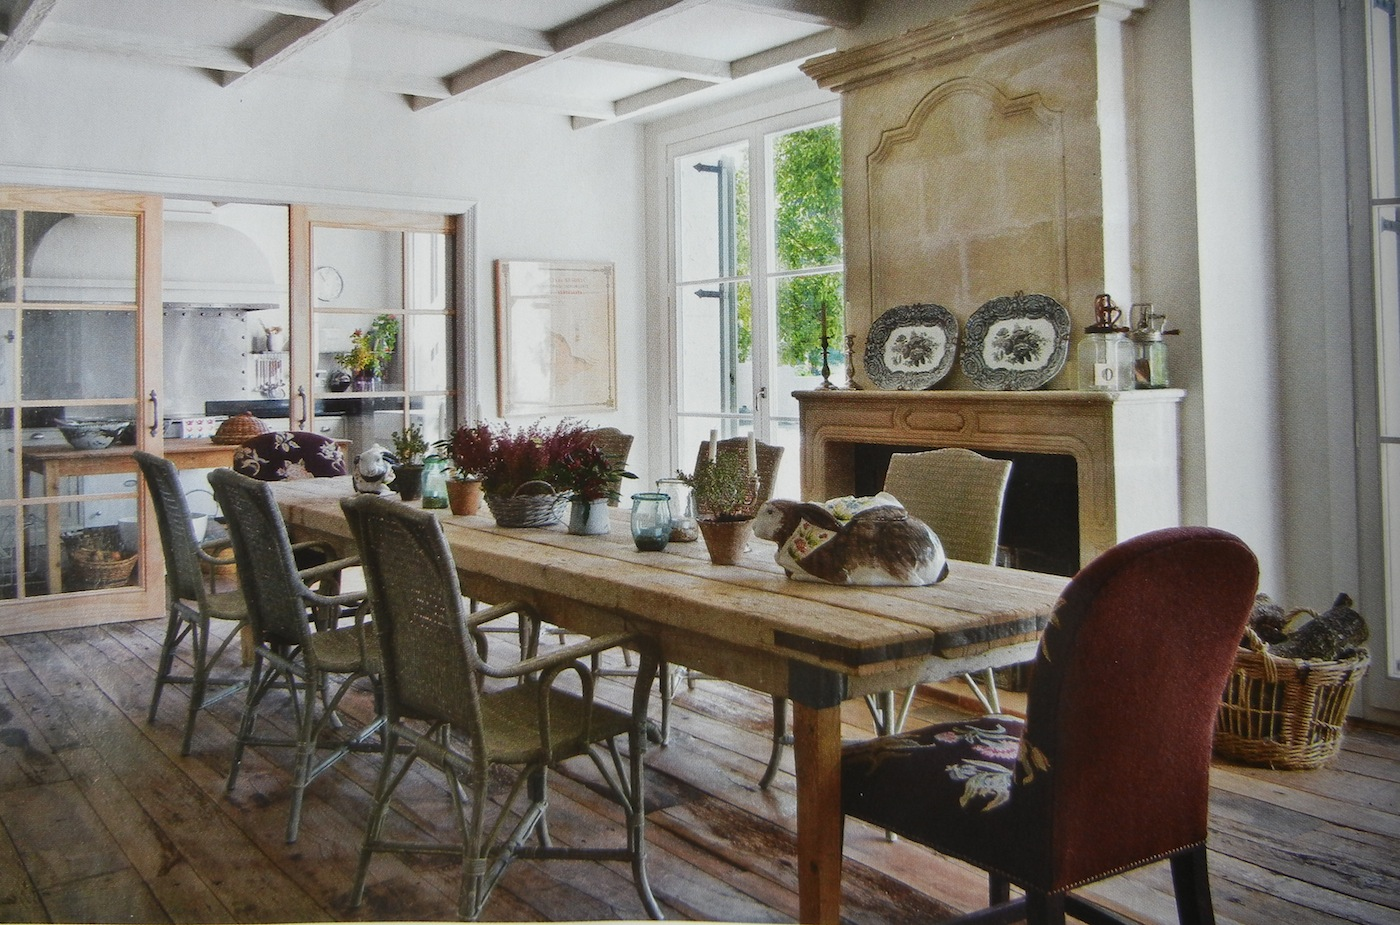 Auction decorating rustic dining tables in spain for Rustic dining room table